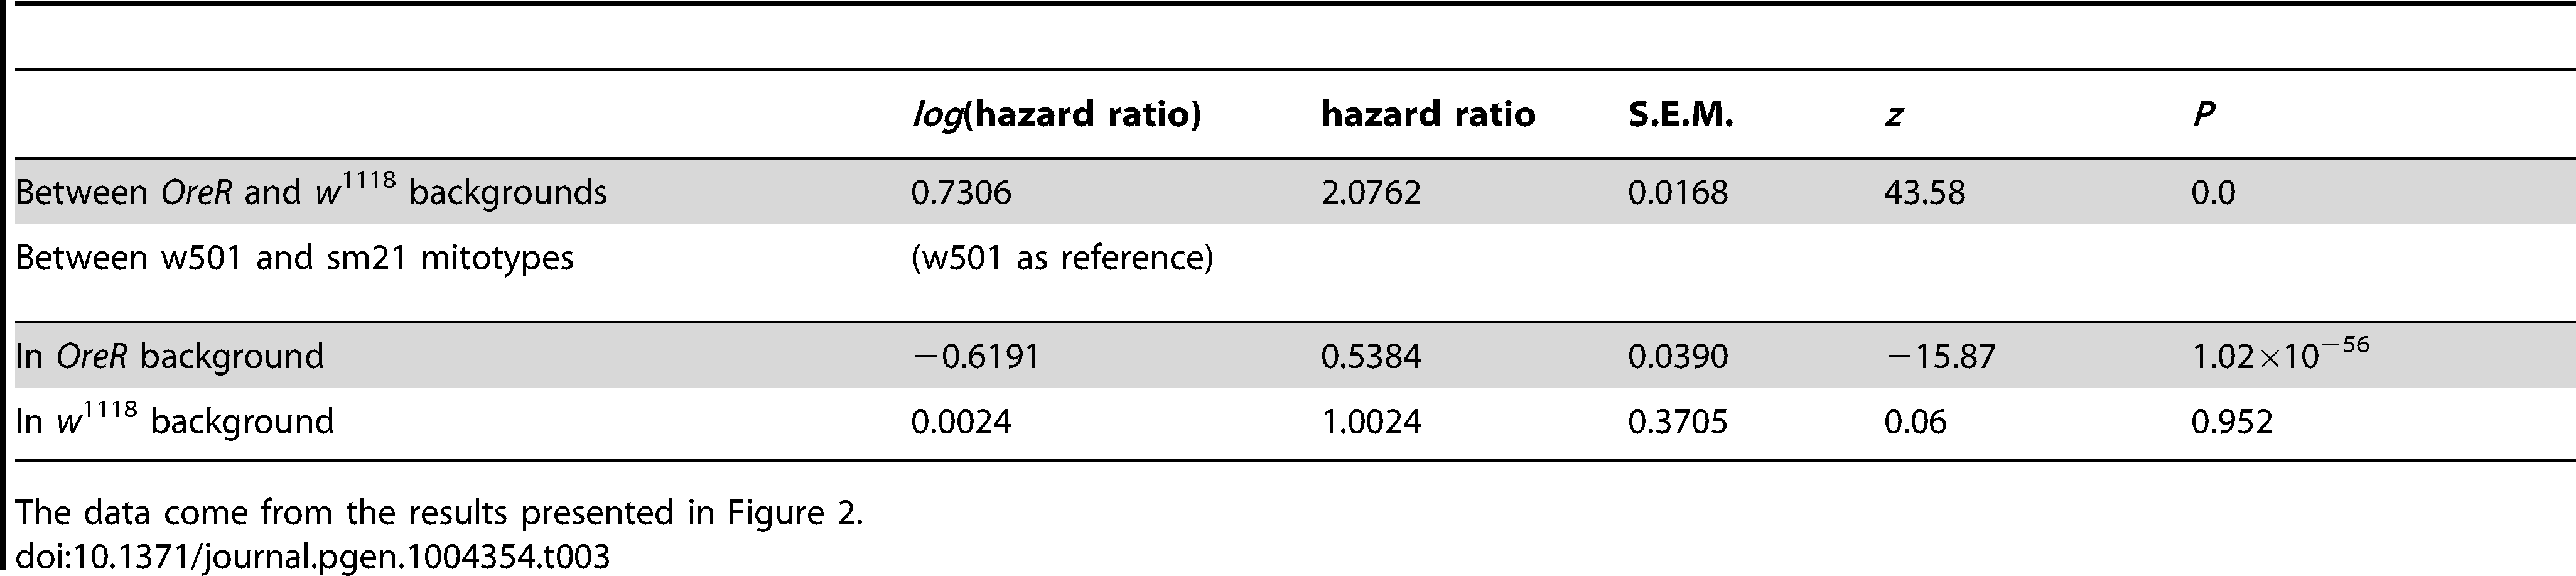 Summary of hazard ratios of background effects and w501 mitotype effects in <i>OreR</i> and <i>w</i><sup>1118</sup> nuclear backgrounds using OreR as the reference nuclear genotype.